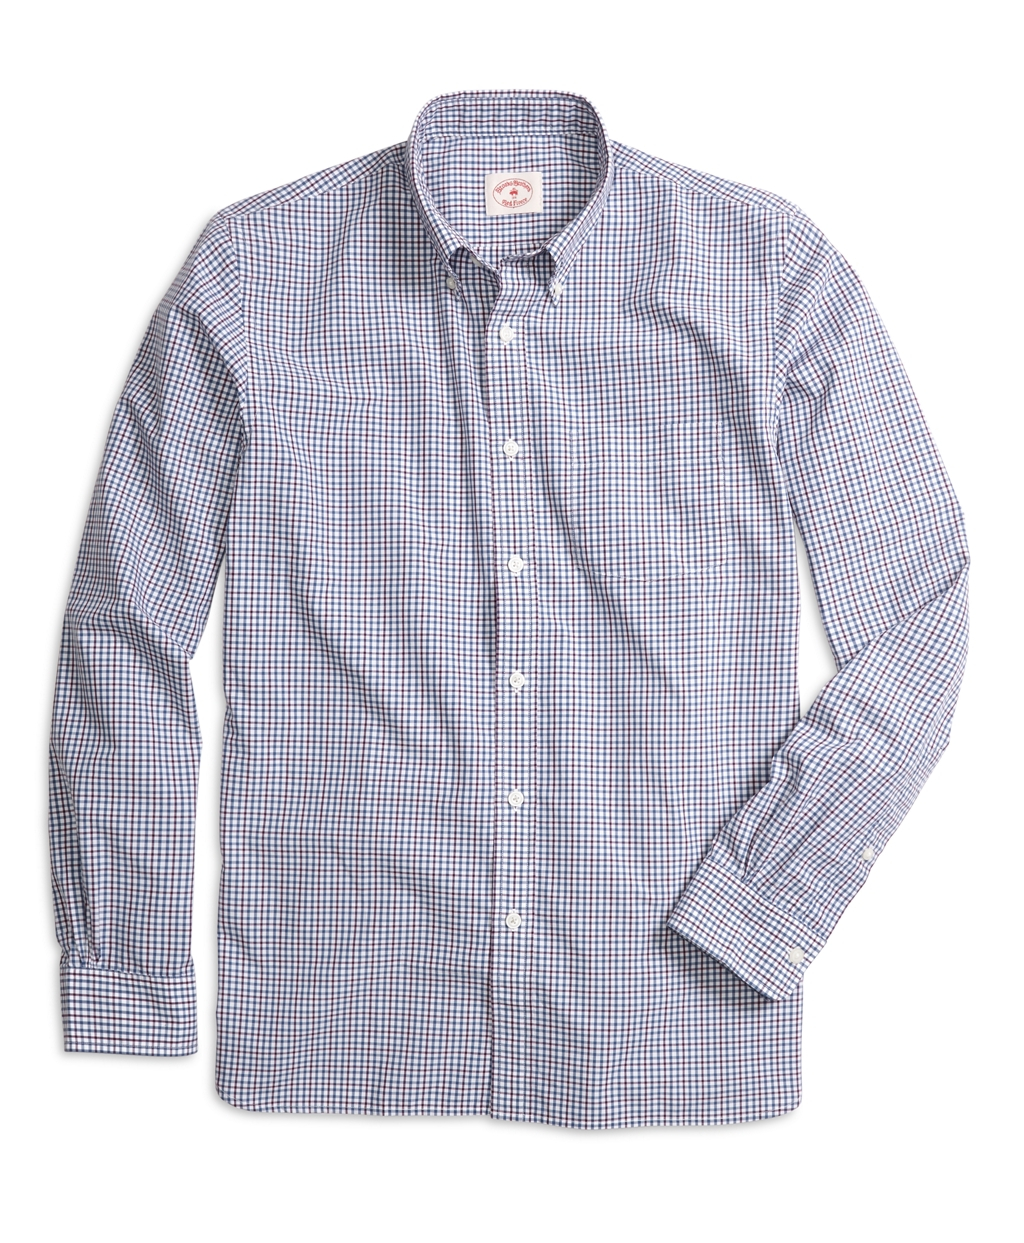 Brooks brothers check sport shirt in blue for men lyst for Brooks brothers sports shirts